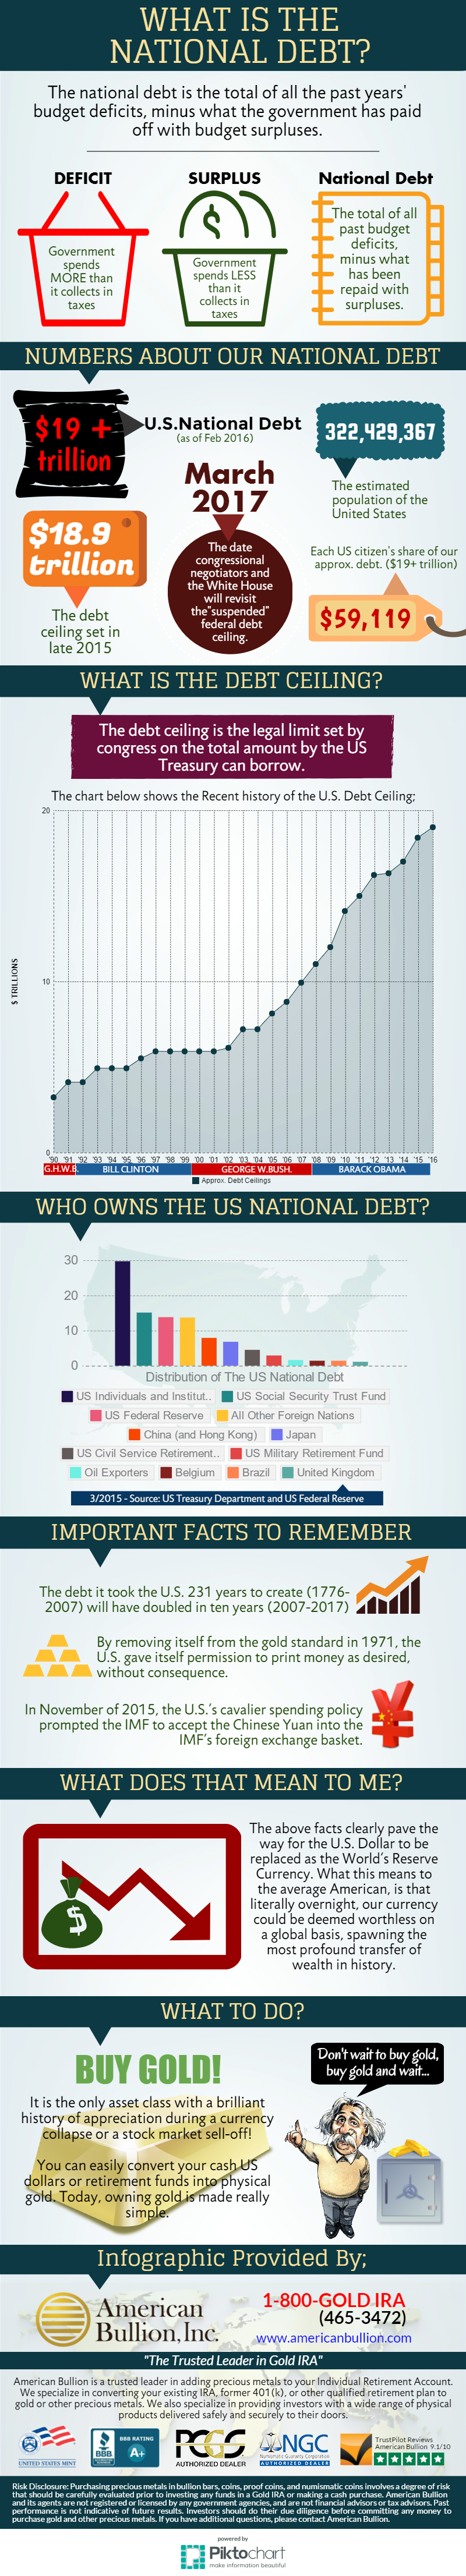 NationalDebtInfographic